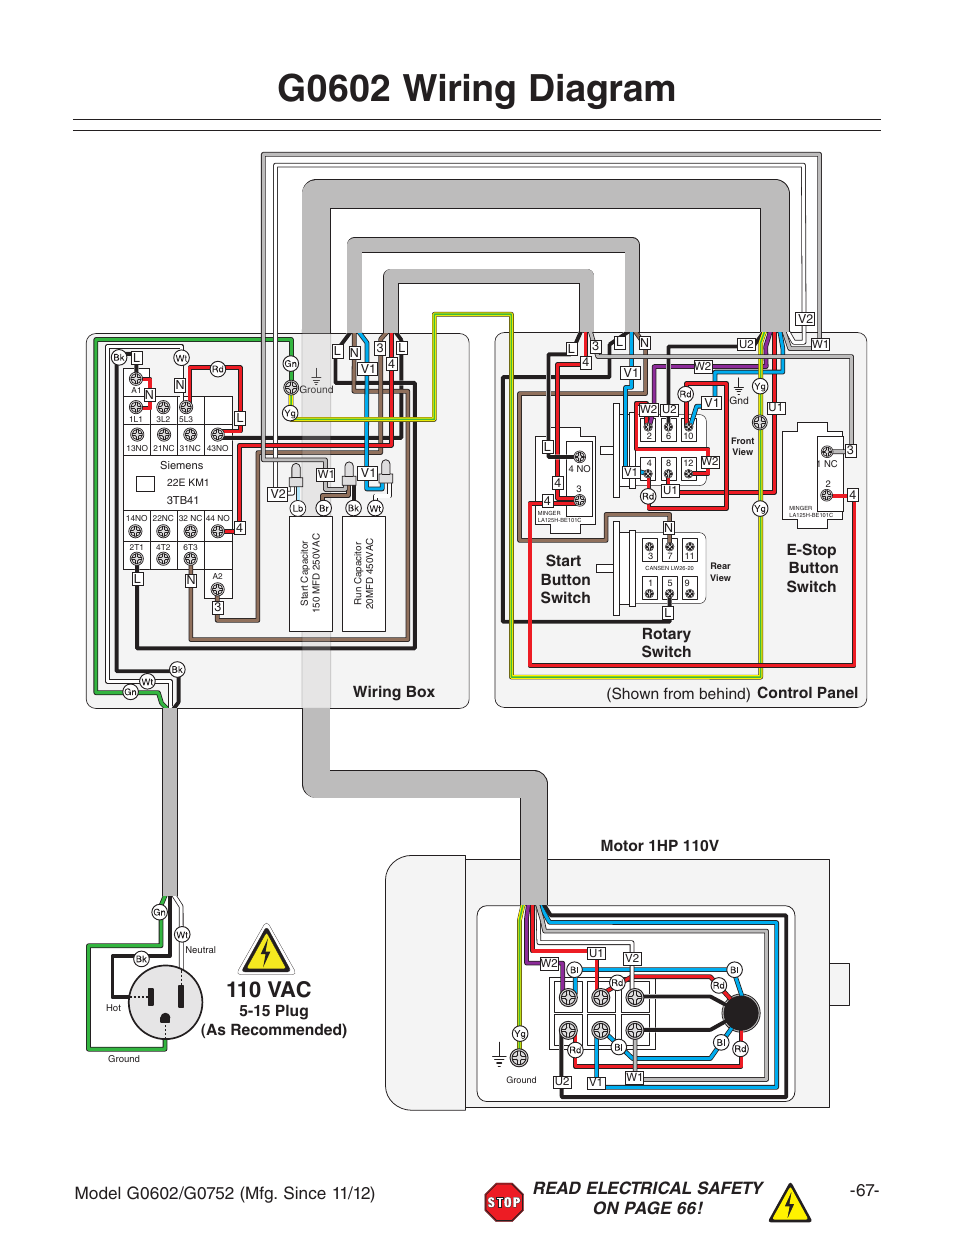 "G0602 wiring diagram, 110 vac, Motor 1hp 110v | Grizzly 10"" x 22"" Benchtop  Lathe G0602 User Manual 